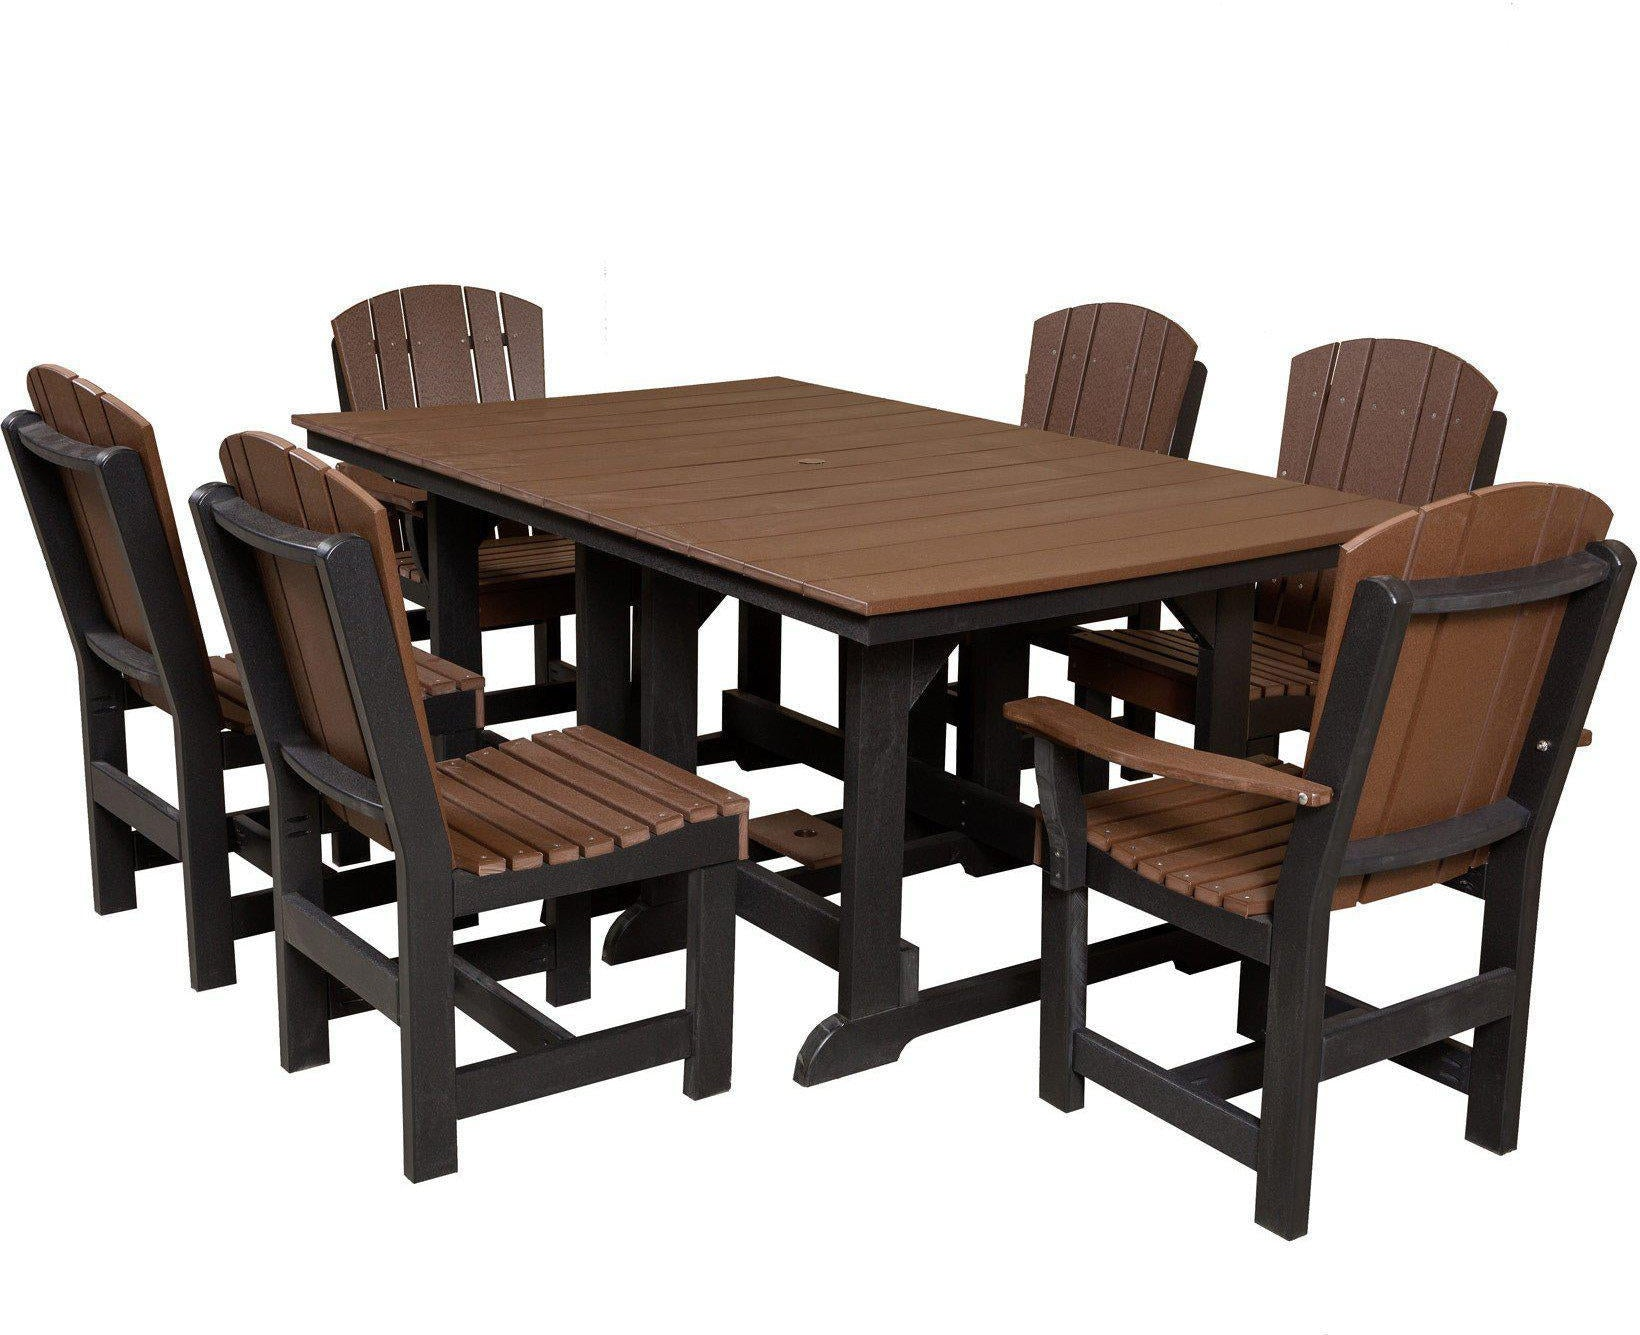 Wildridge Heritage 7 Piece Rectangular Patio Dining Set   Tudor Brown Black  Frame